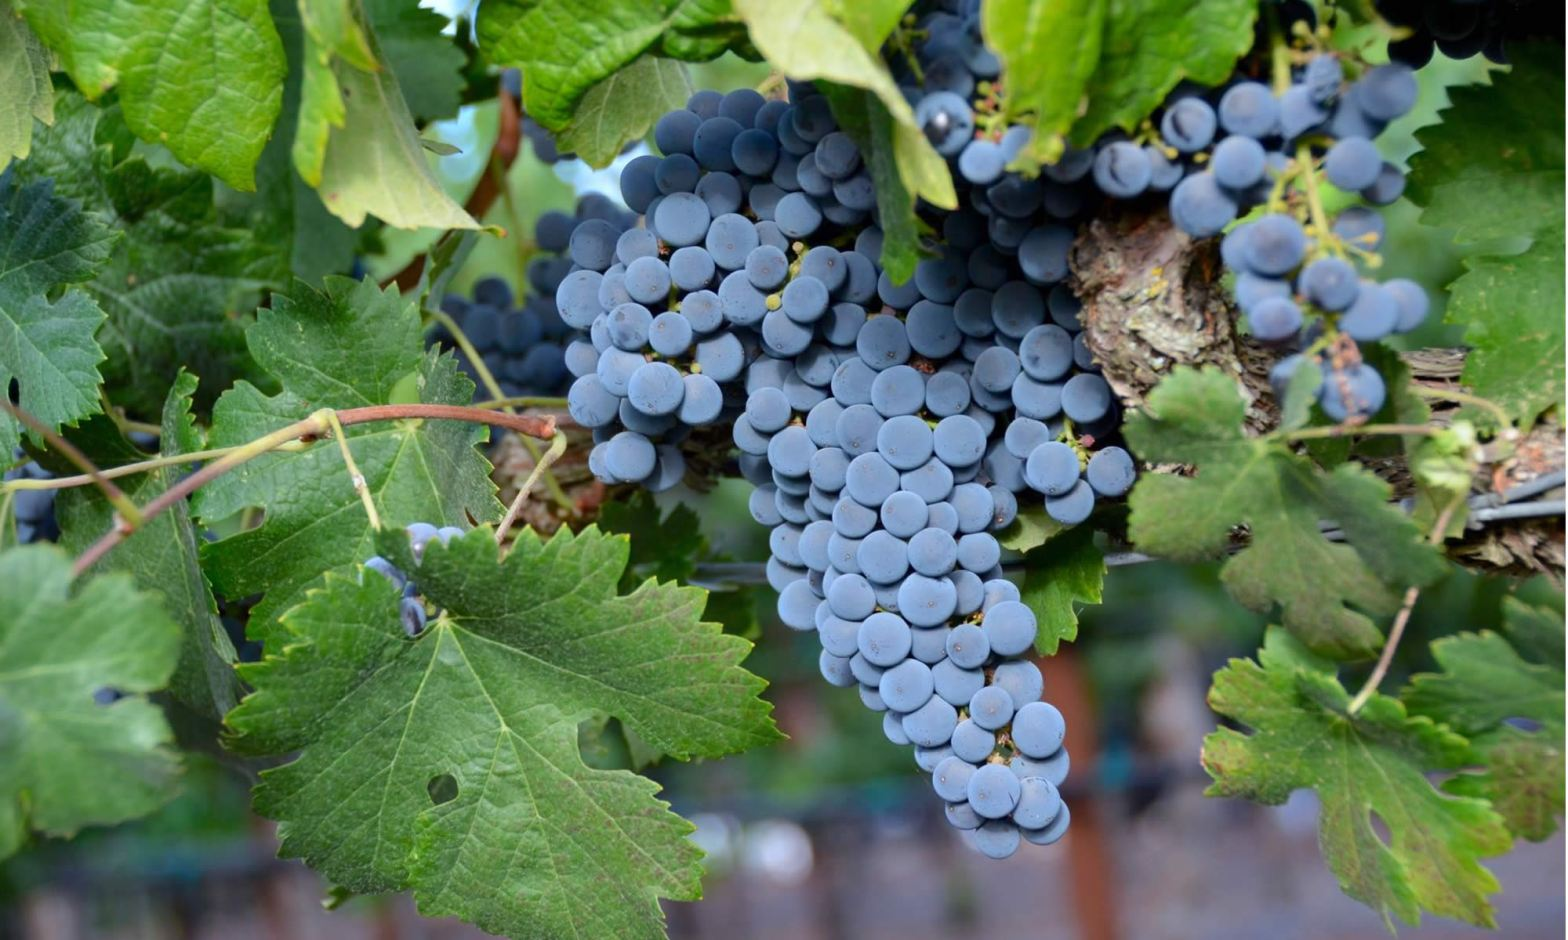 A bunch of purple grapes cling to the vine in Napa wine country, California.